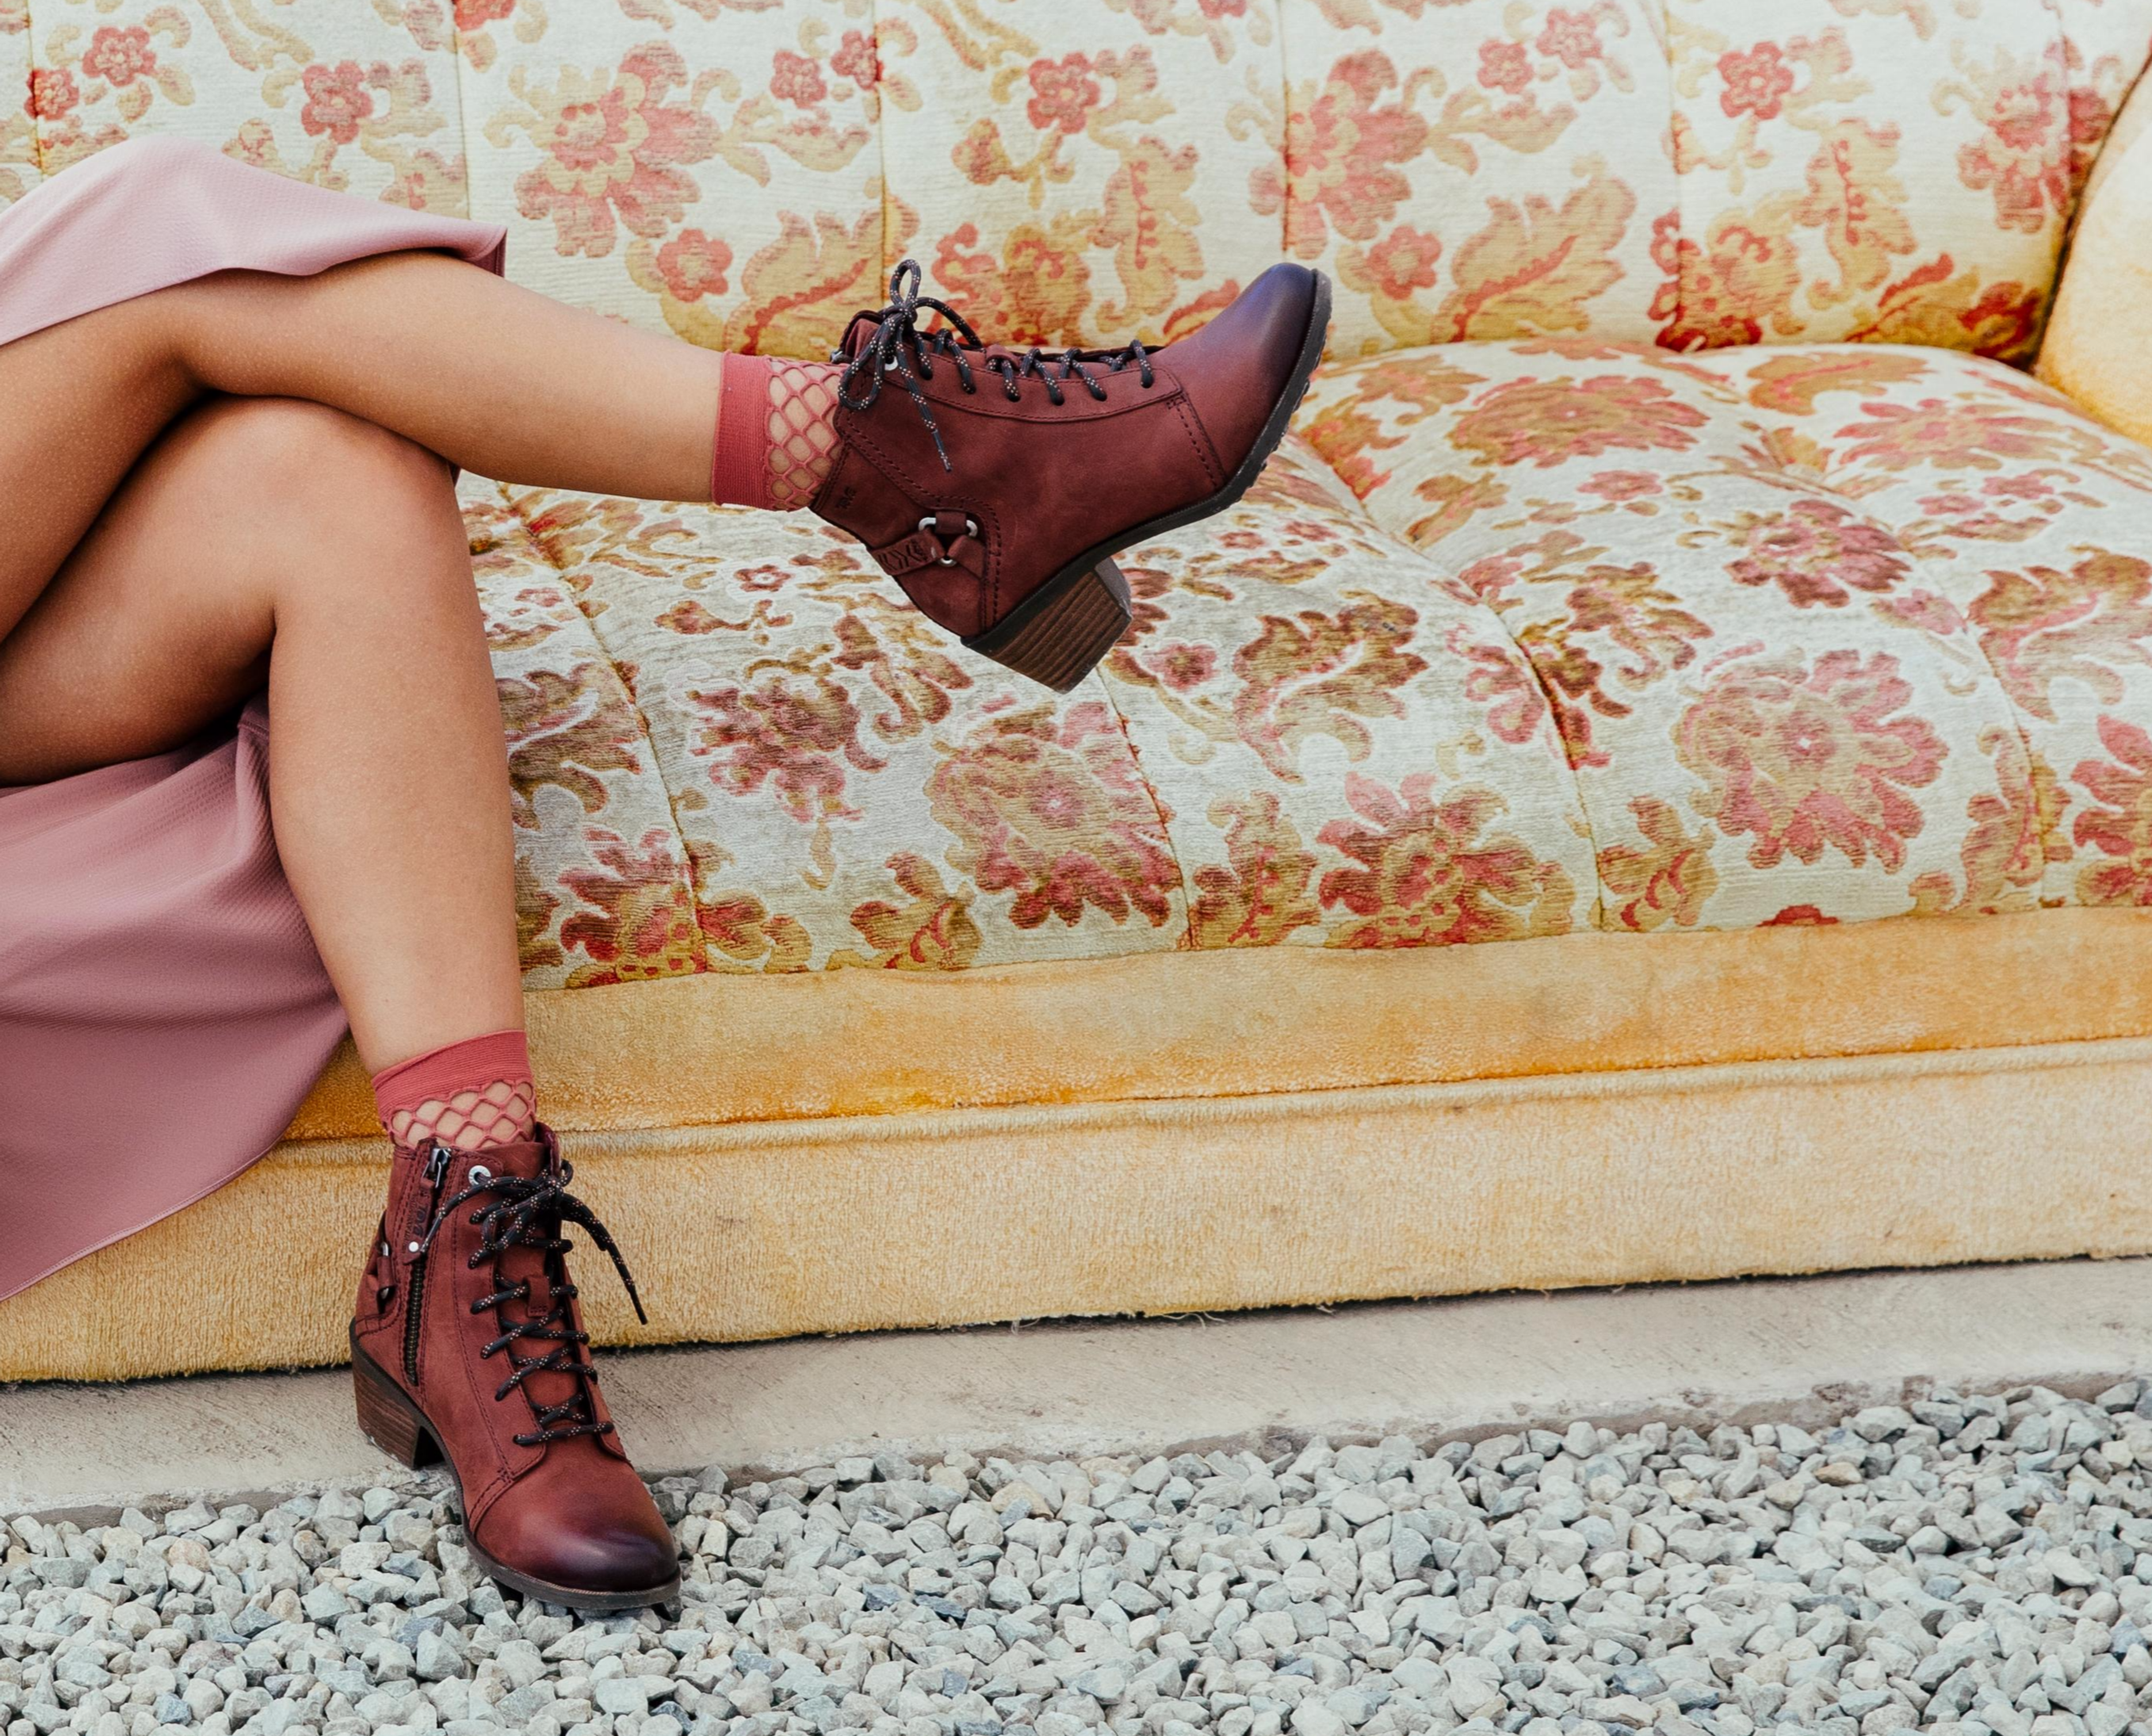 1c16d454d Because urban adventuring is adventuring nonetheless. Our Foxy Lace WP Boot  is ready to hit the streets and the shops. Check it out now on Teva.com --